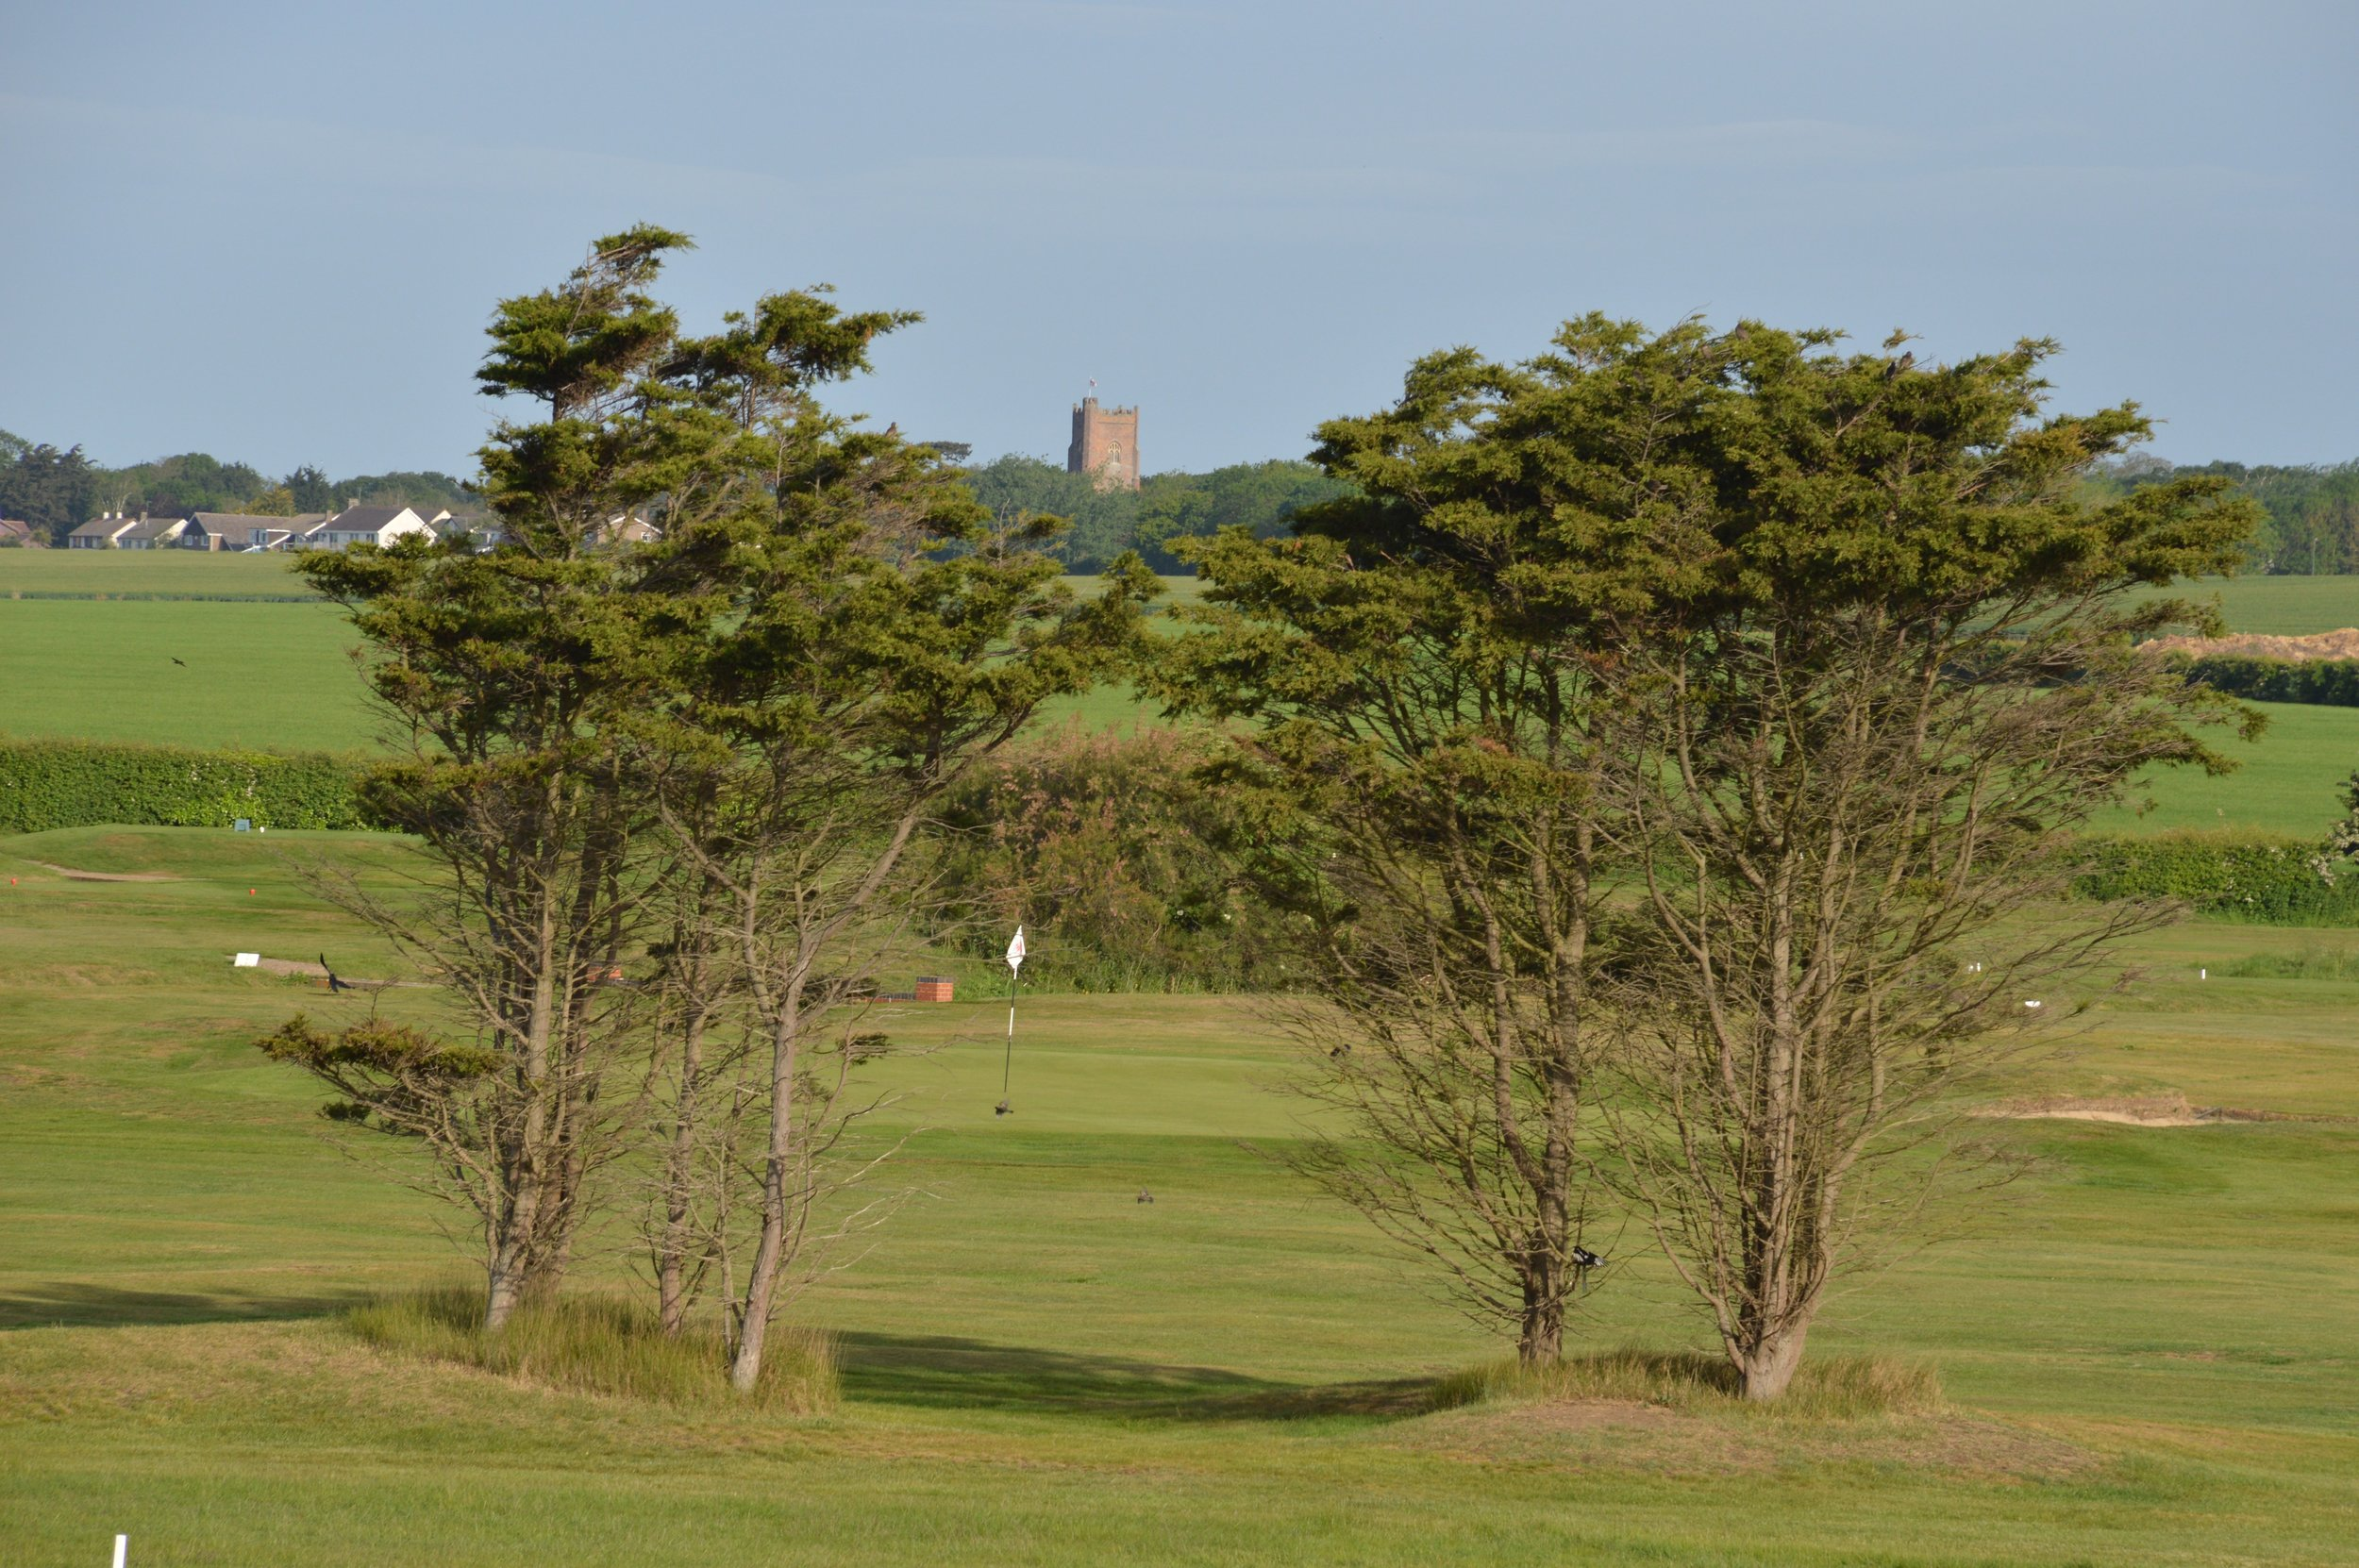 View across the Golf Club